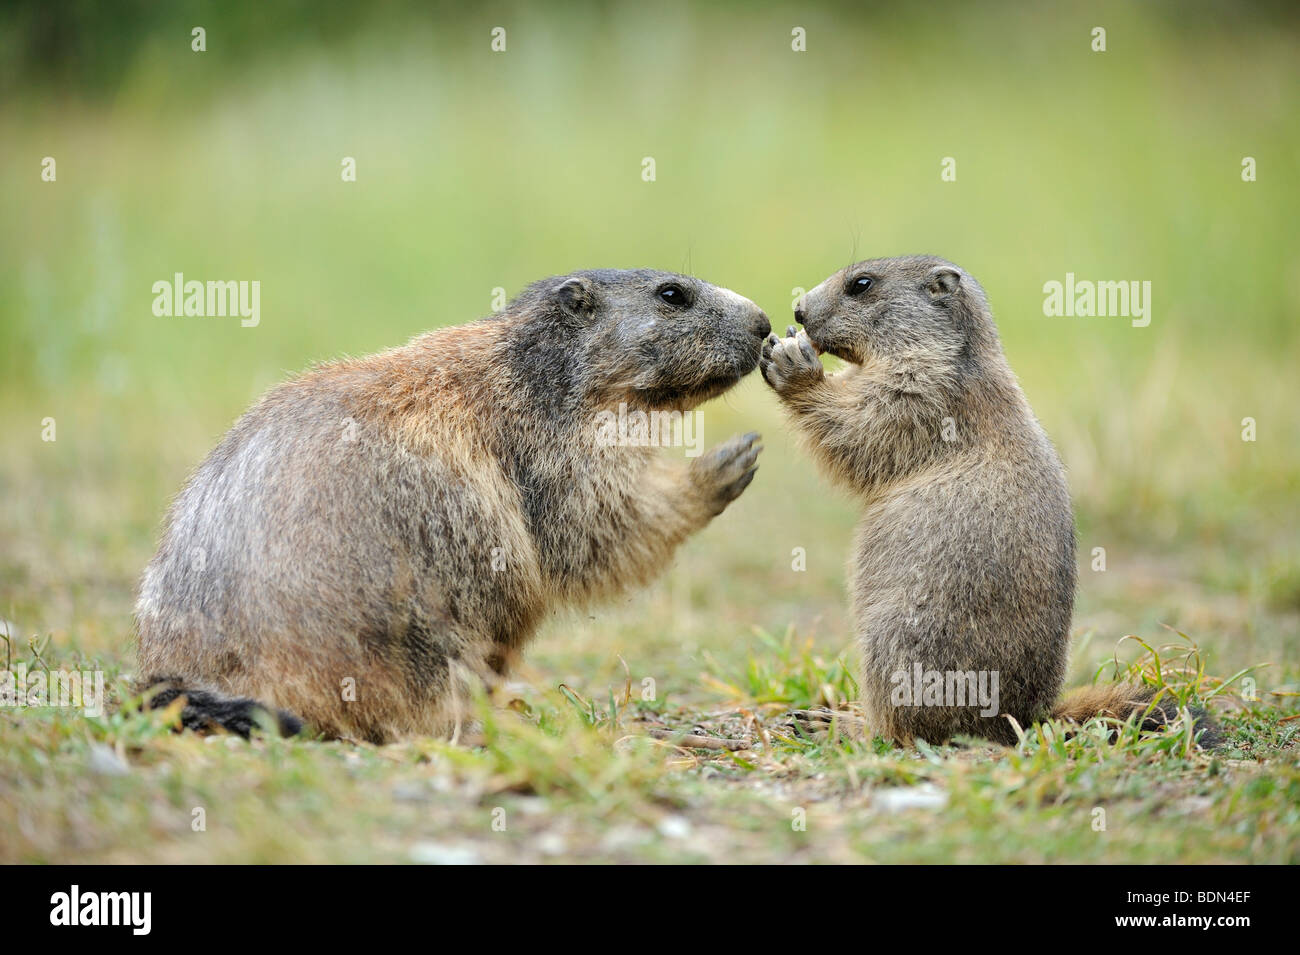 Alpine marmot (Marmota marmota) with young begging for food - Stock Image